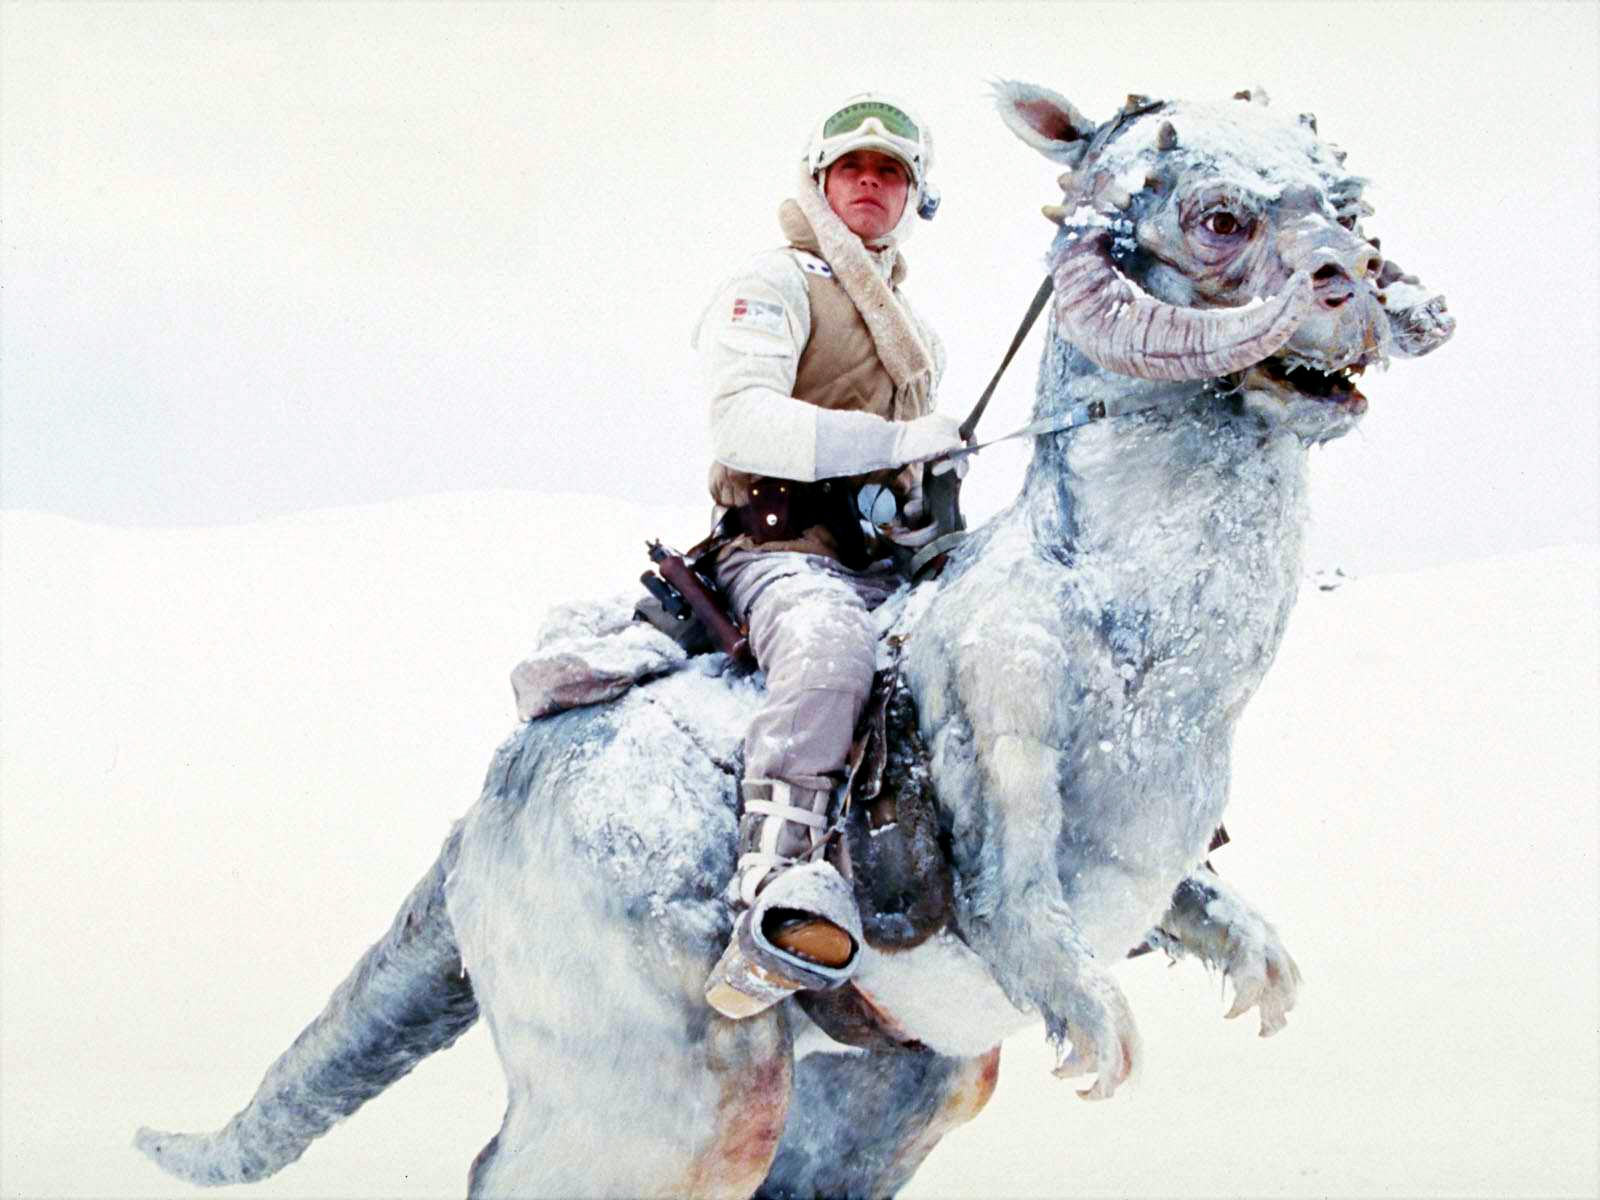 Hoth from Star Wars